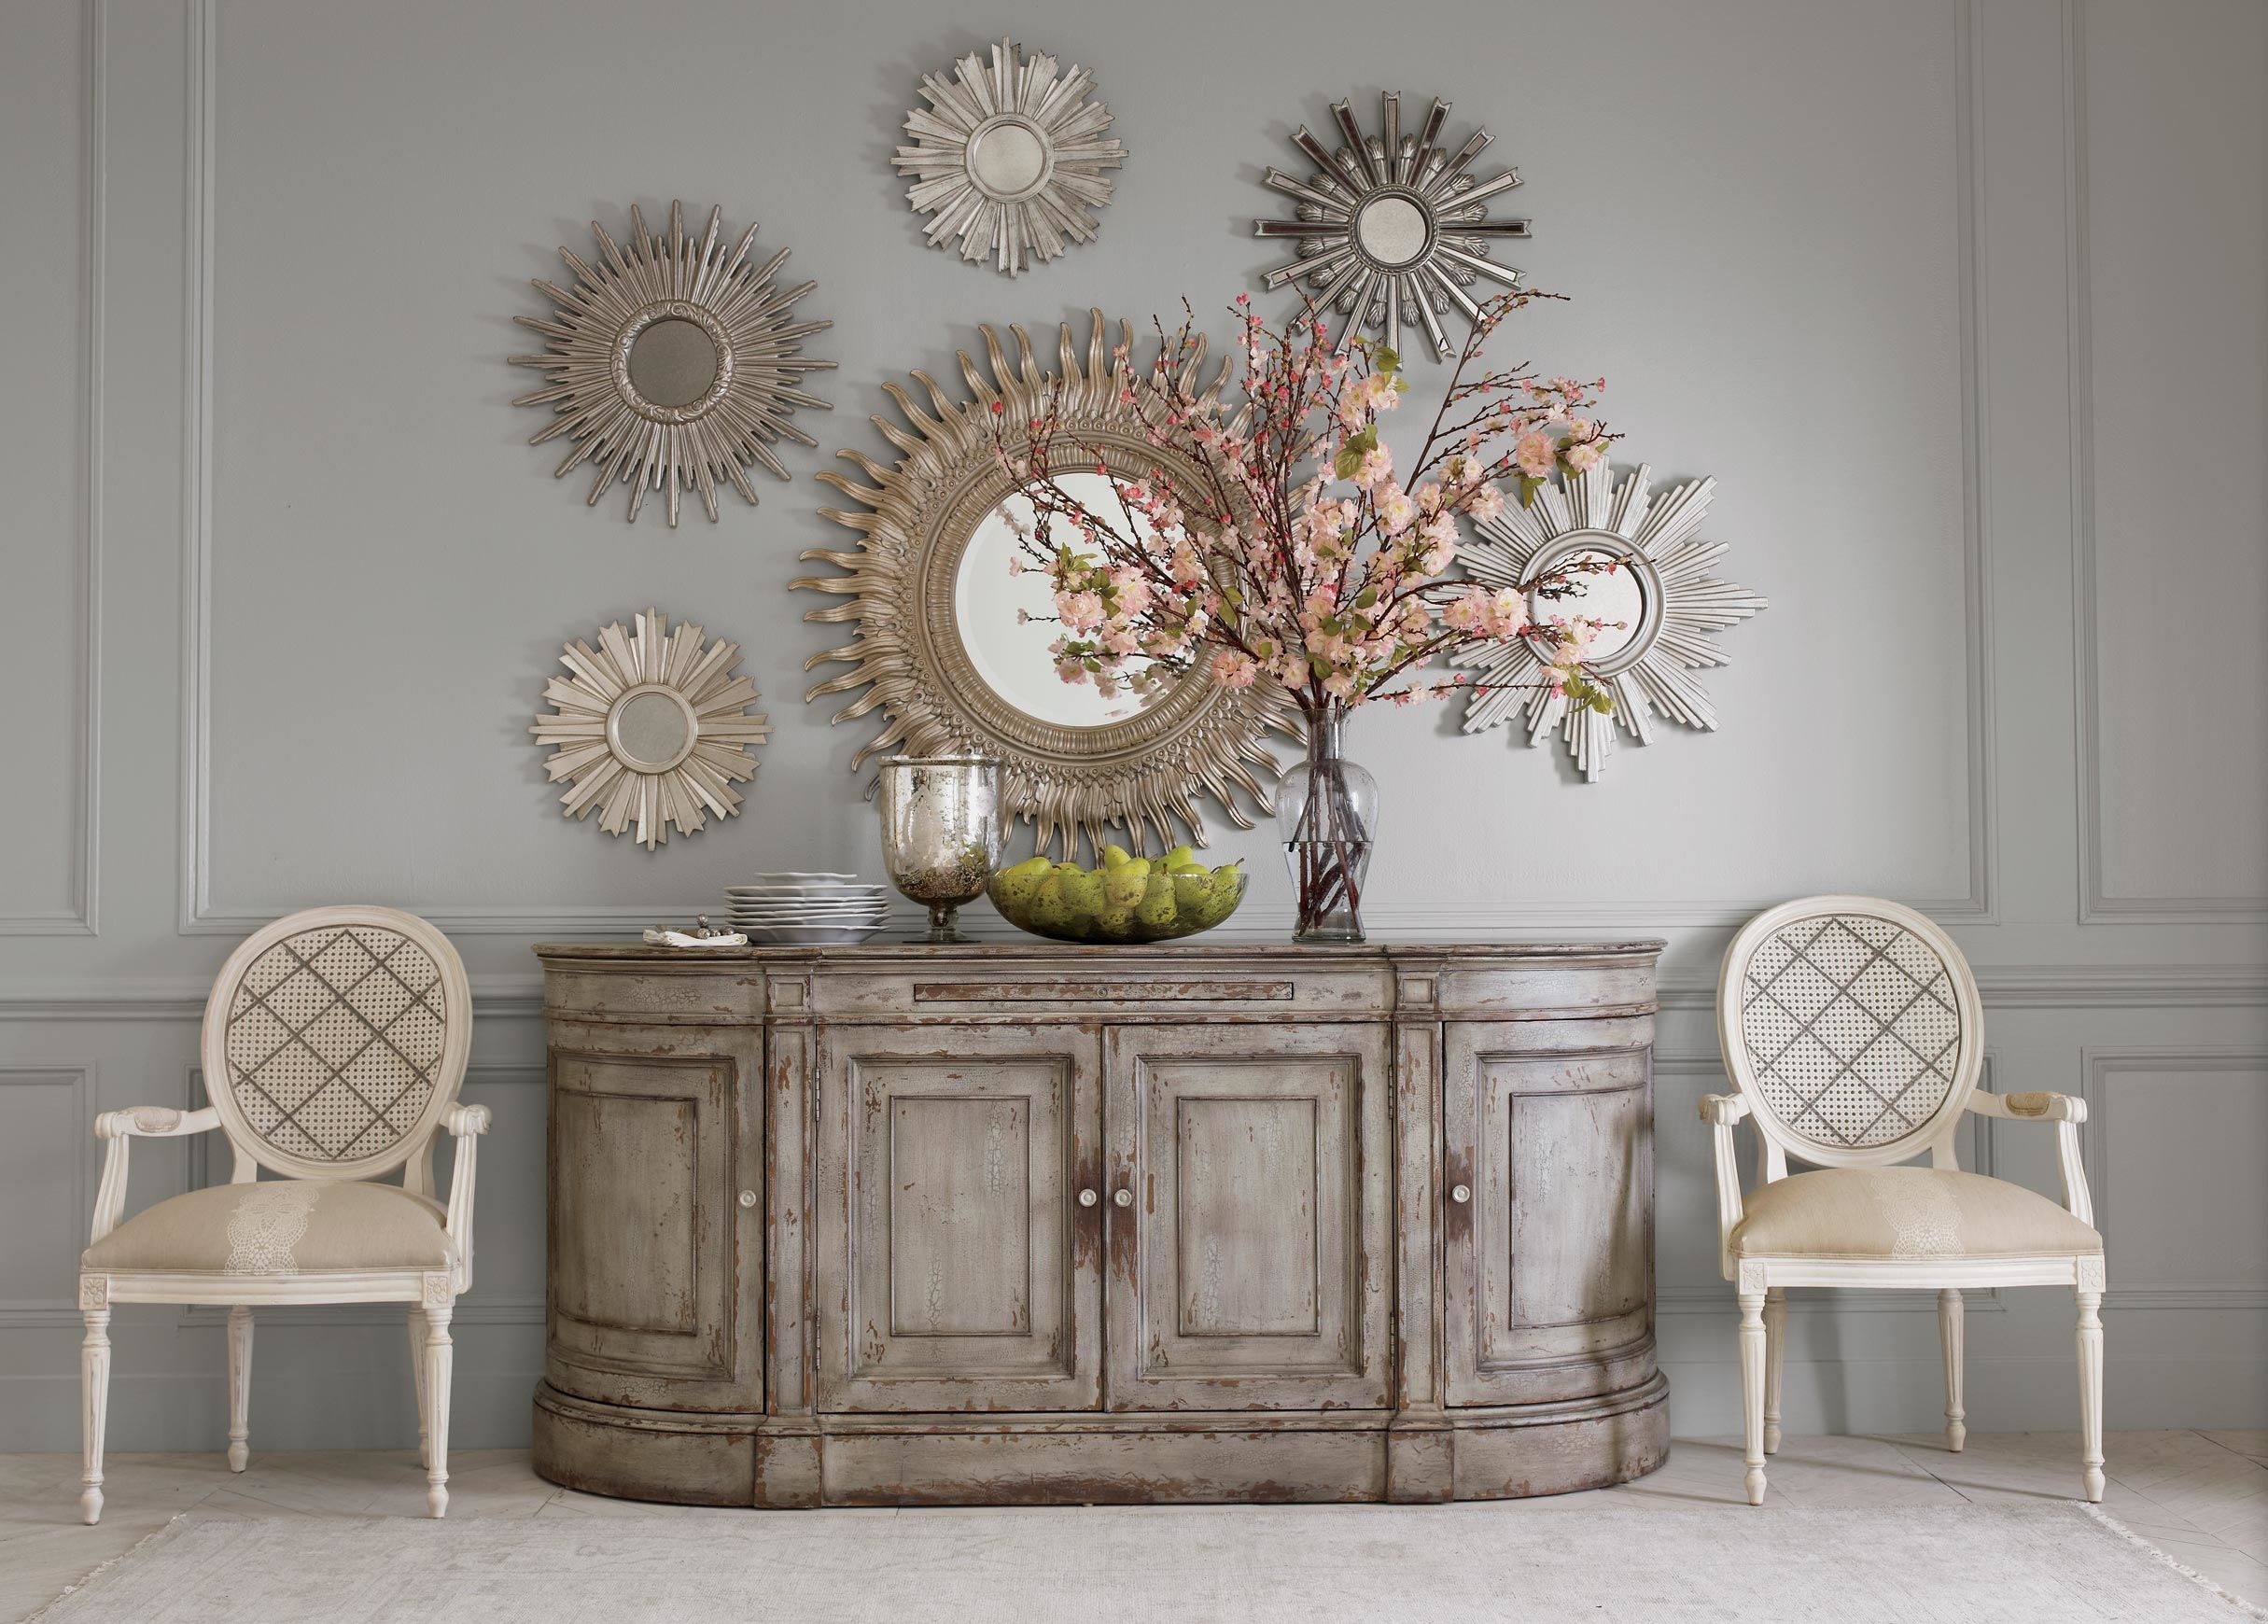 Mesmerizing Sunburst Mirrors at The Wall: Cool Sunburst Mirrors With Rustic Table And Night Lap Combined Plus Luxury Wall